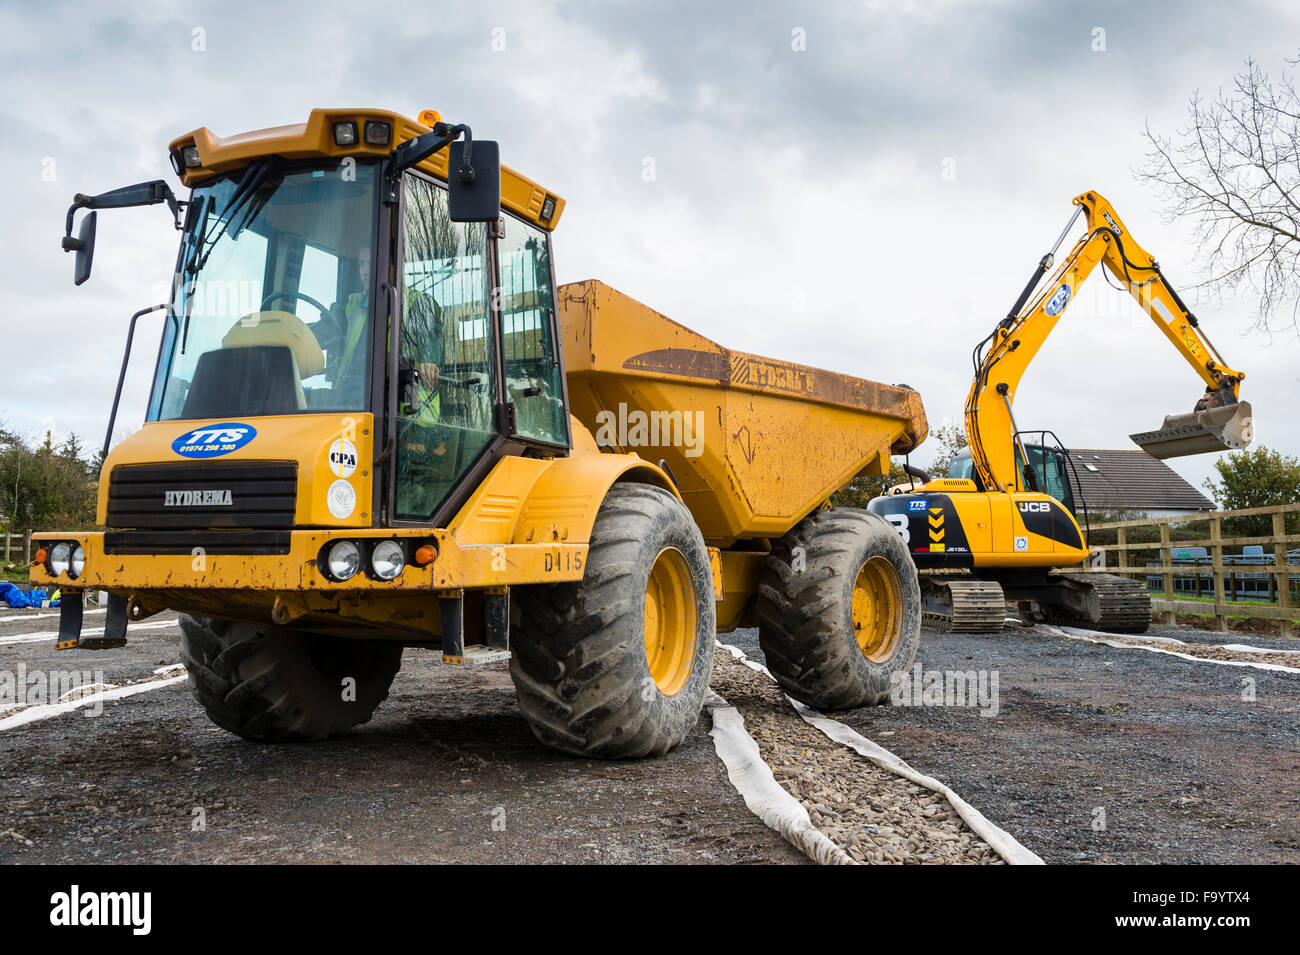 Yellow Heavy Dumper Truck And Jcb Digger Excavator Plant Machinery